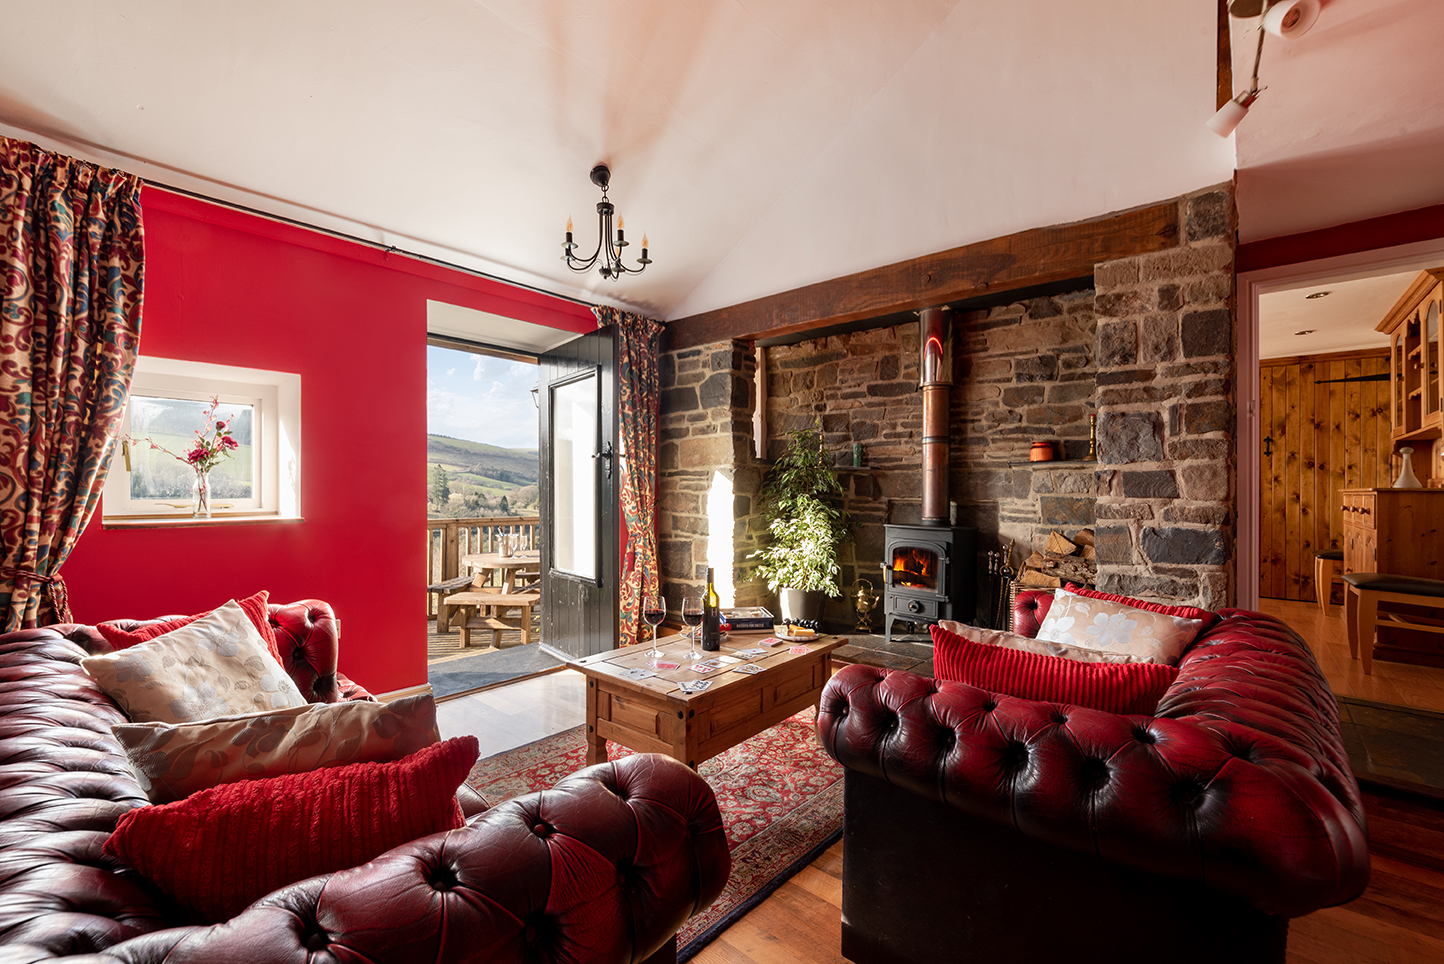 Holiday accommodation professional photography, website and marketing services by ACT Studios